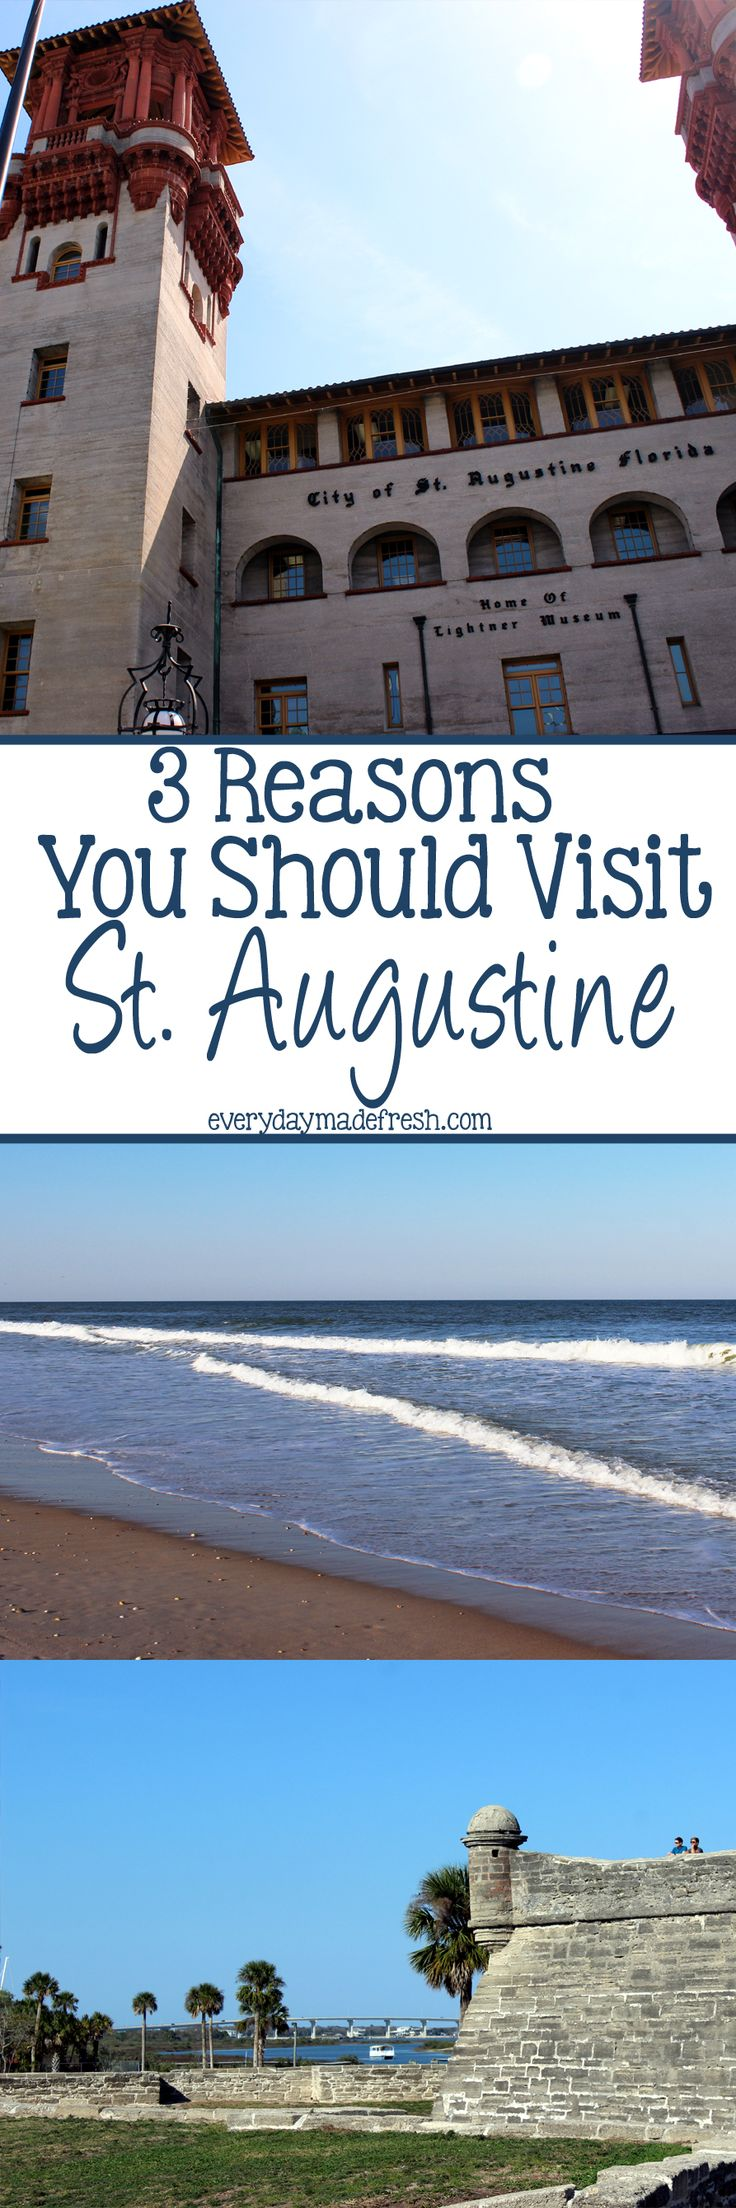 I researched high and low before our day trip to St. Augustine, and here are 3 Reasons You Should Visit St. Augustine. | EverydayMadeFresh.com http://www.everydaymadefresh.com/3-reasons-visit-st-augustine/